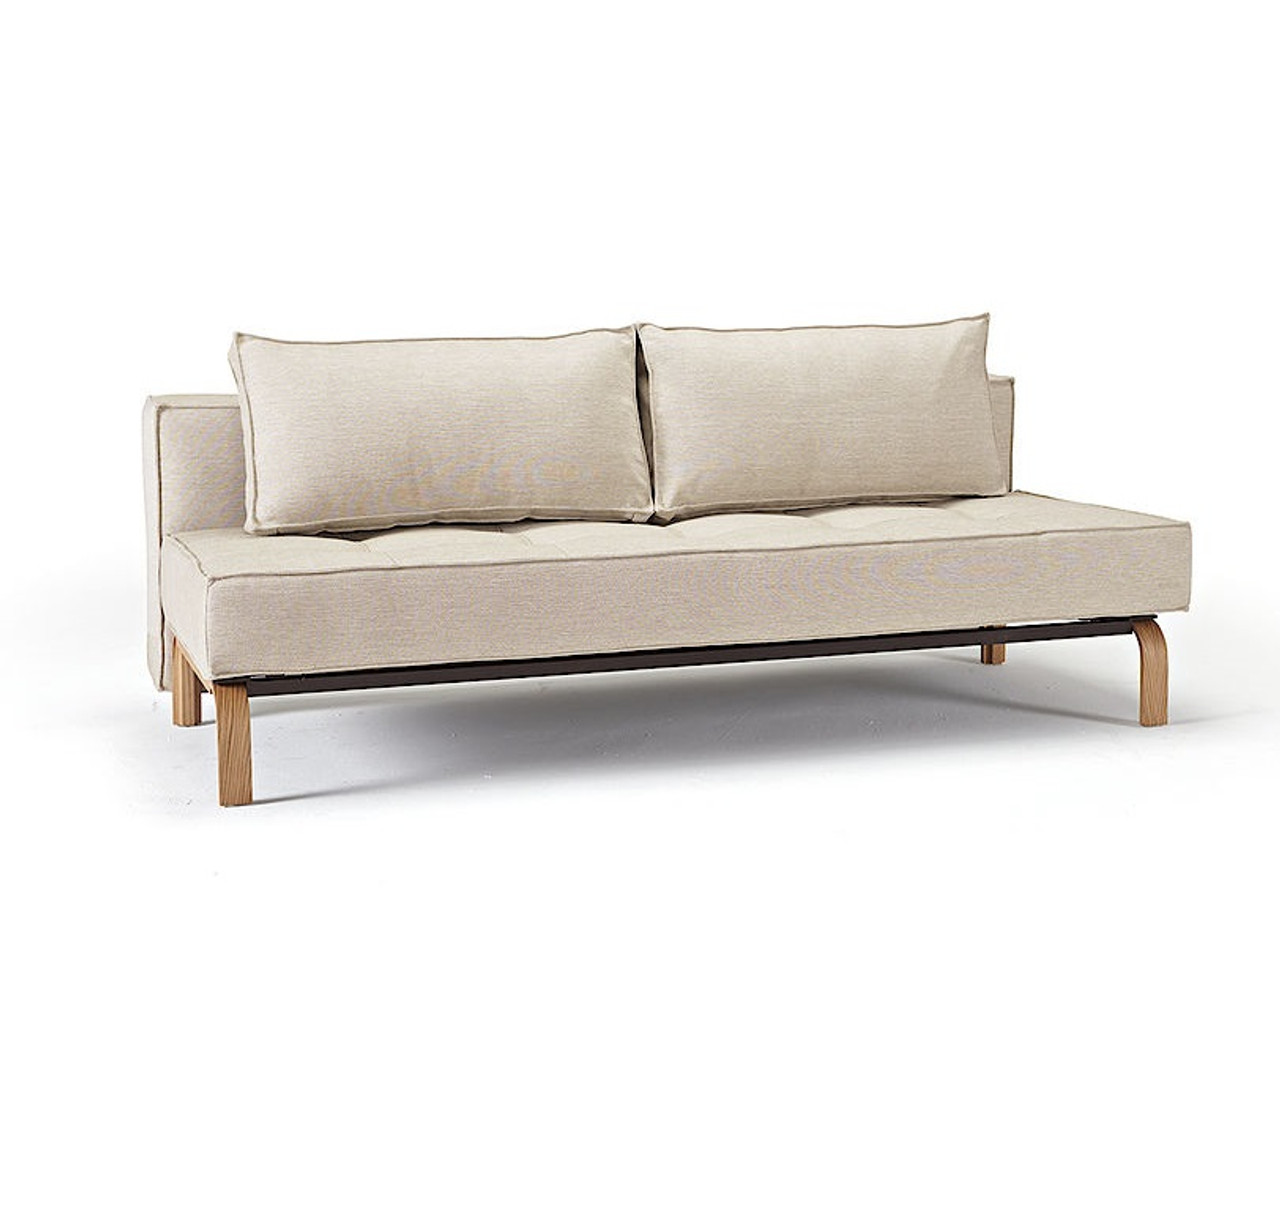 Full Size Convertible Sofa Harper Full Size Convertible Sofa Bed By Istikbal In Bari Vizon Thesofa